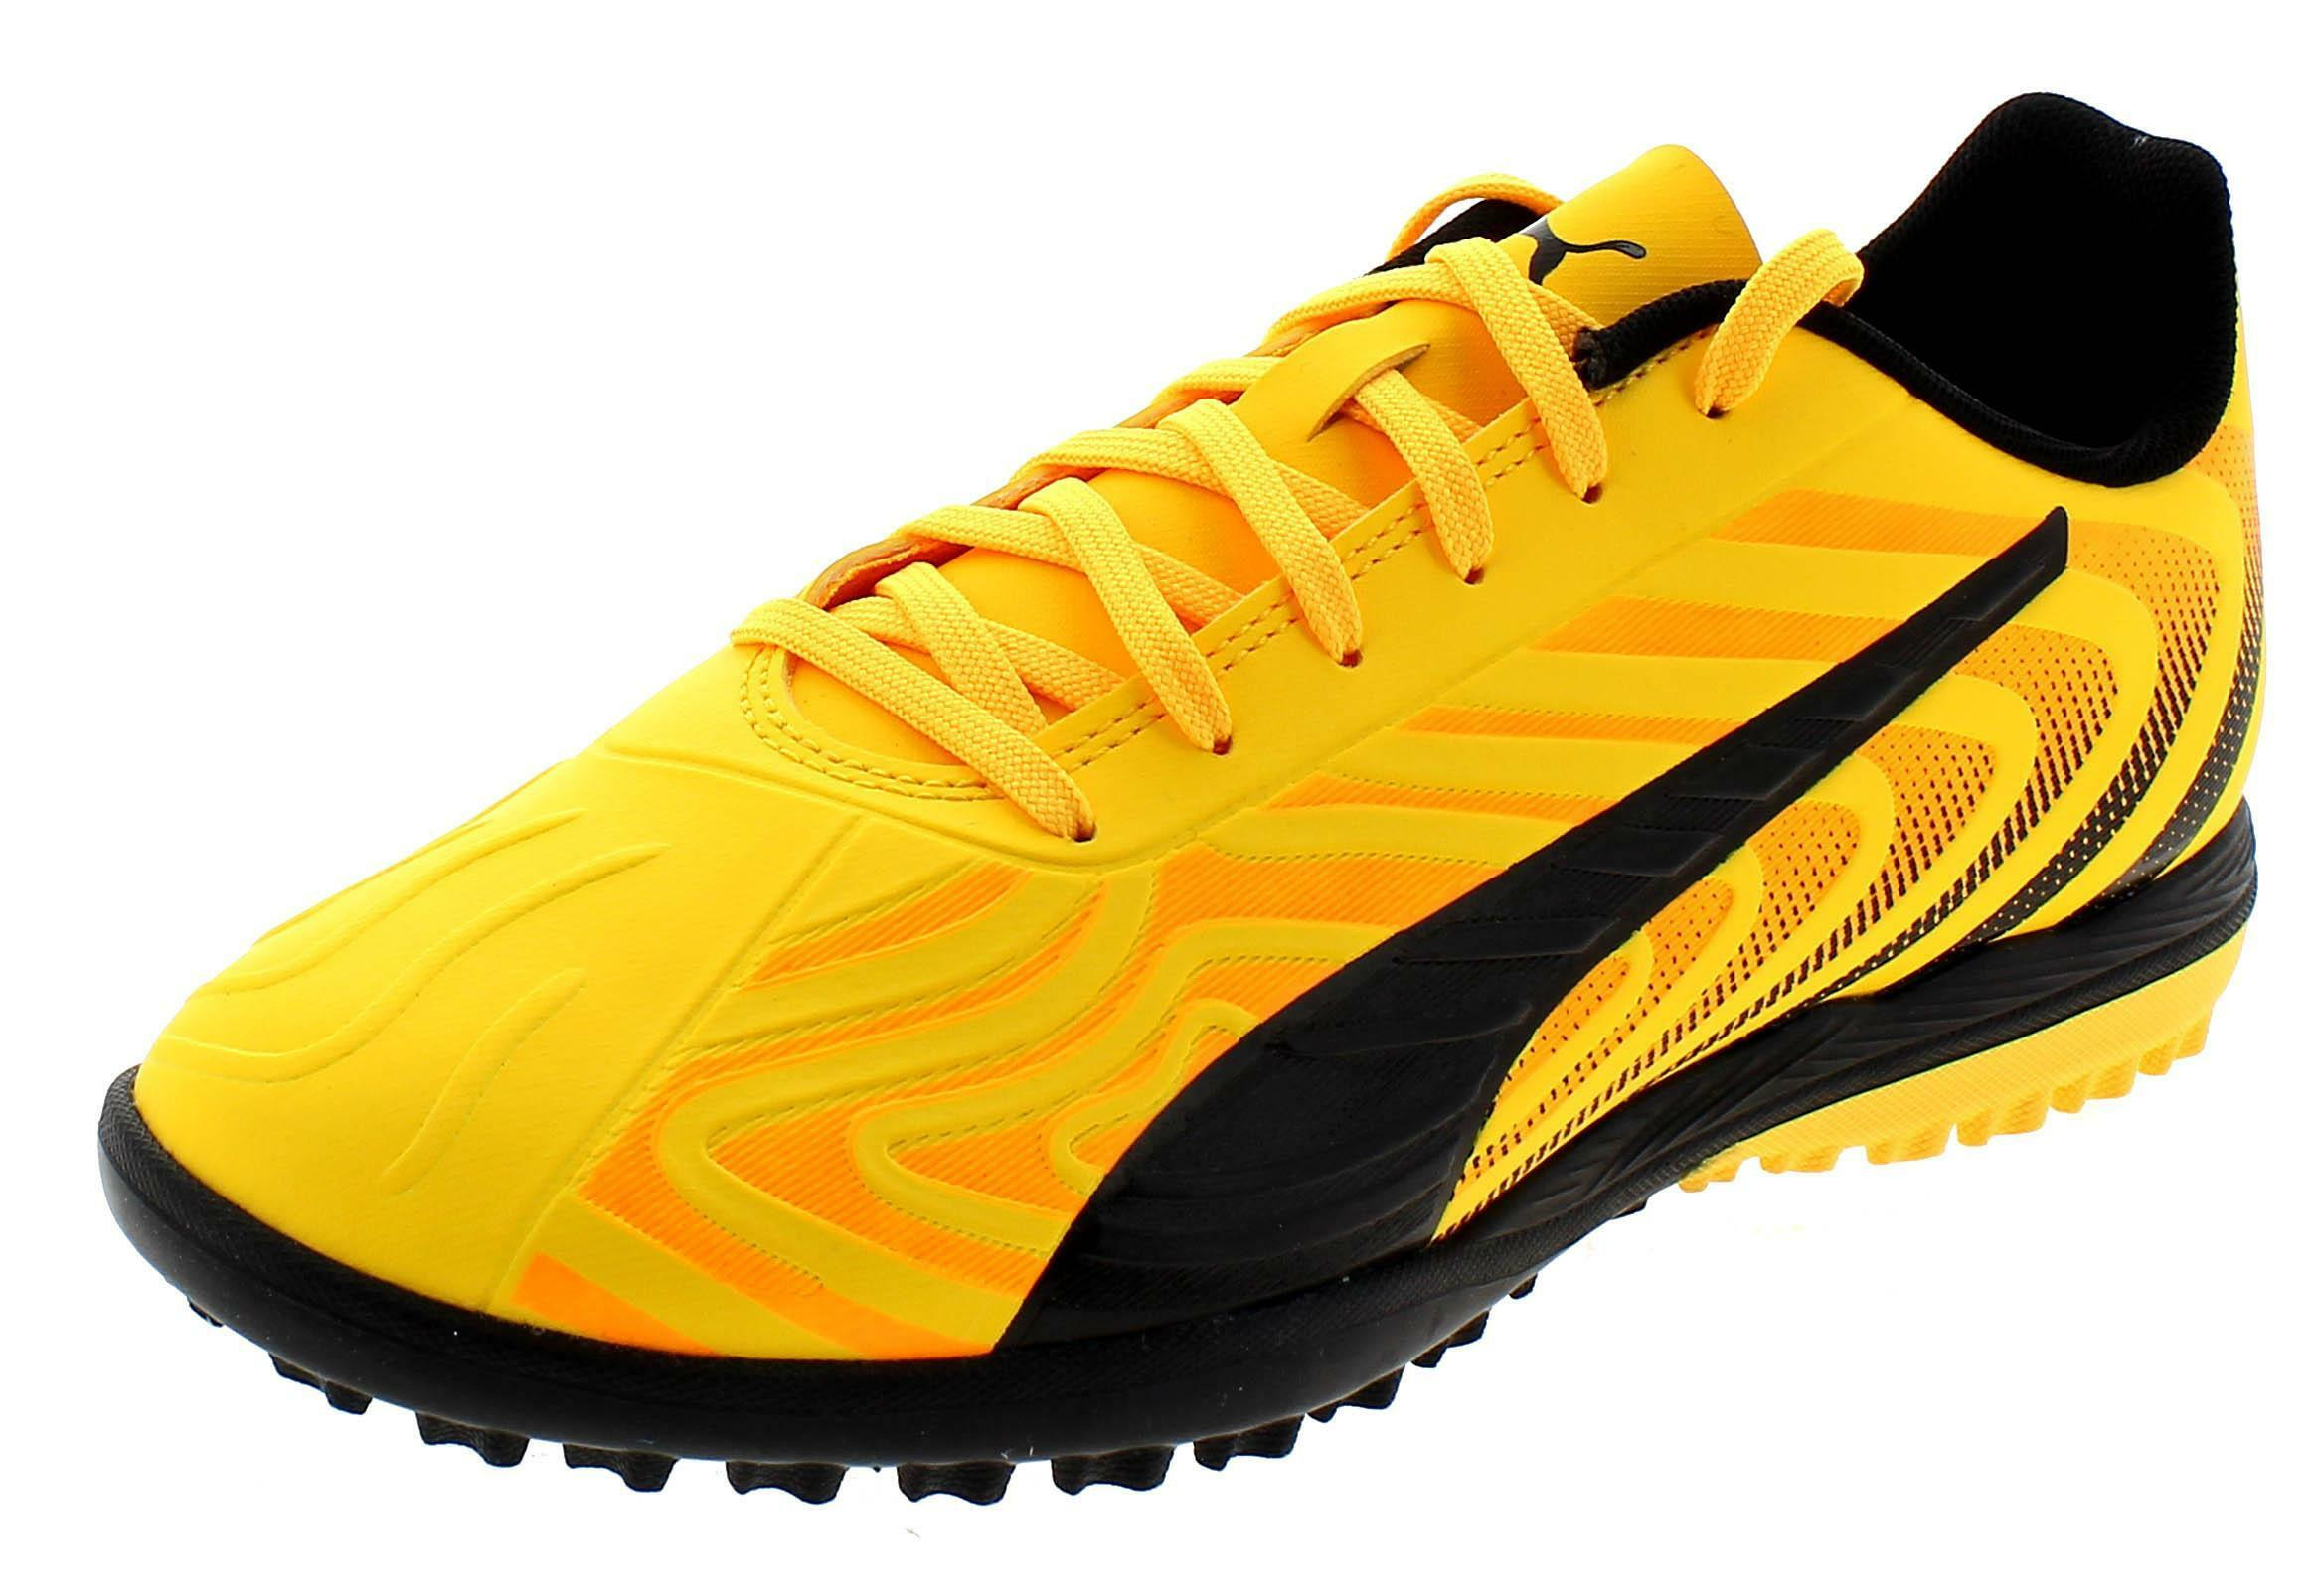 puma one calcetto